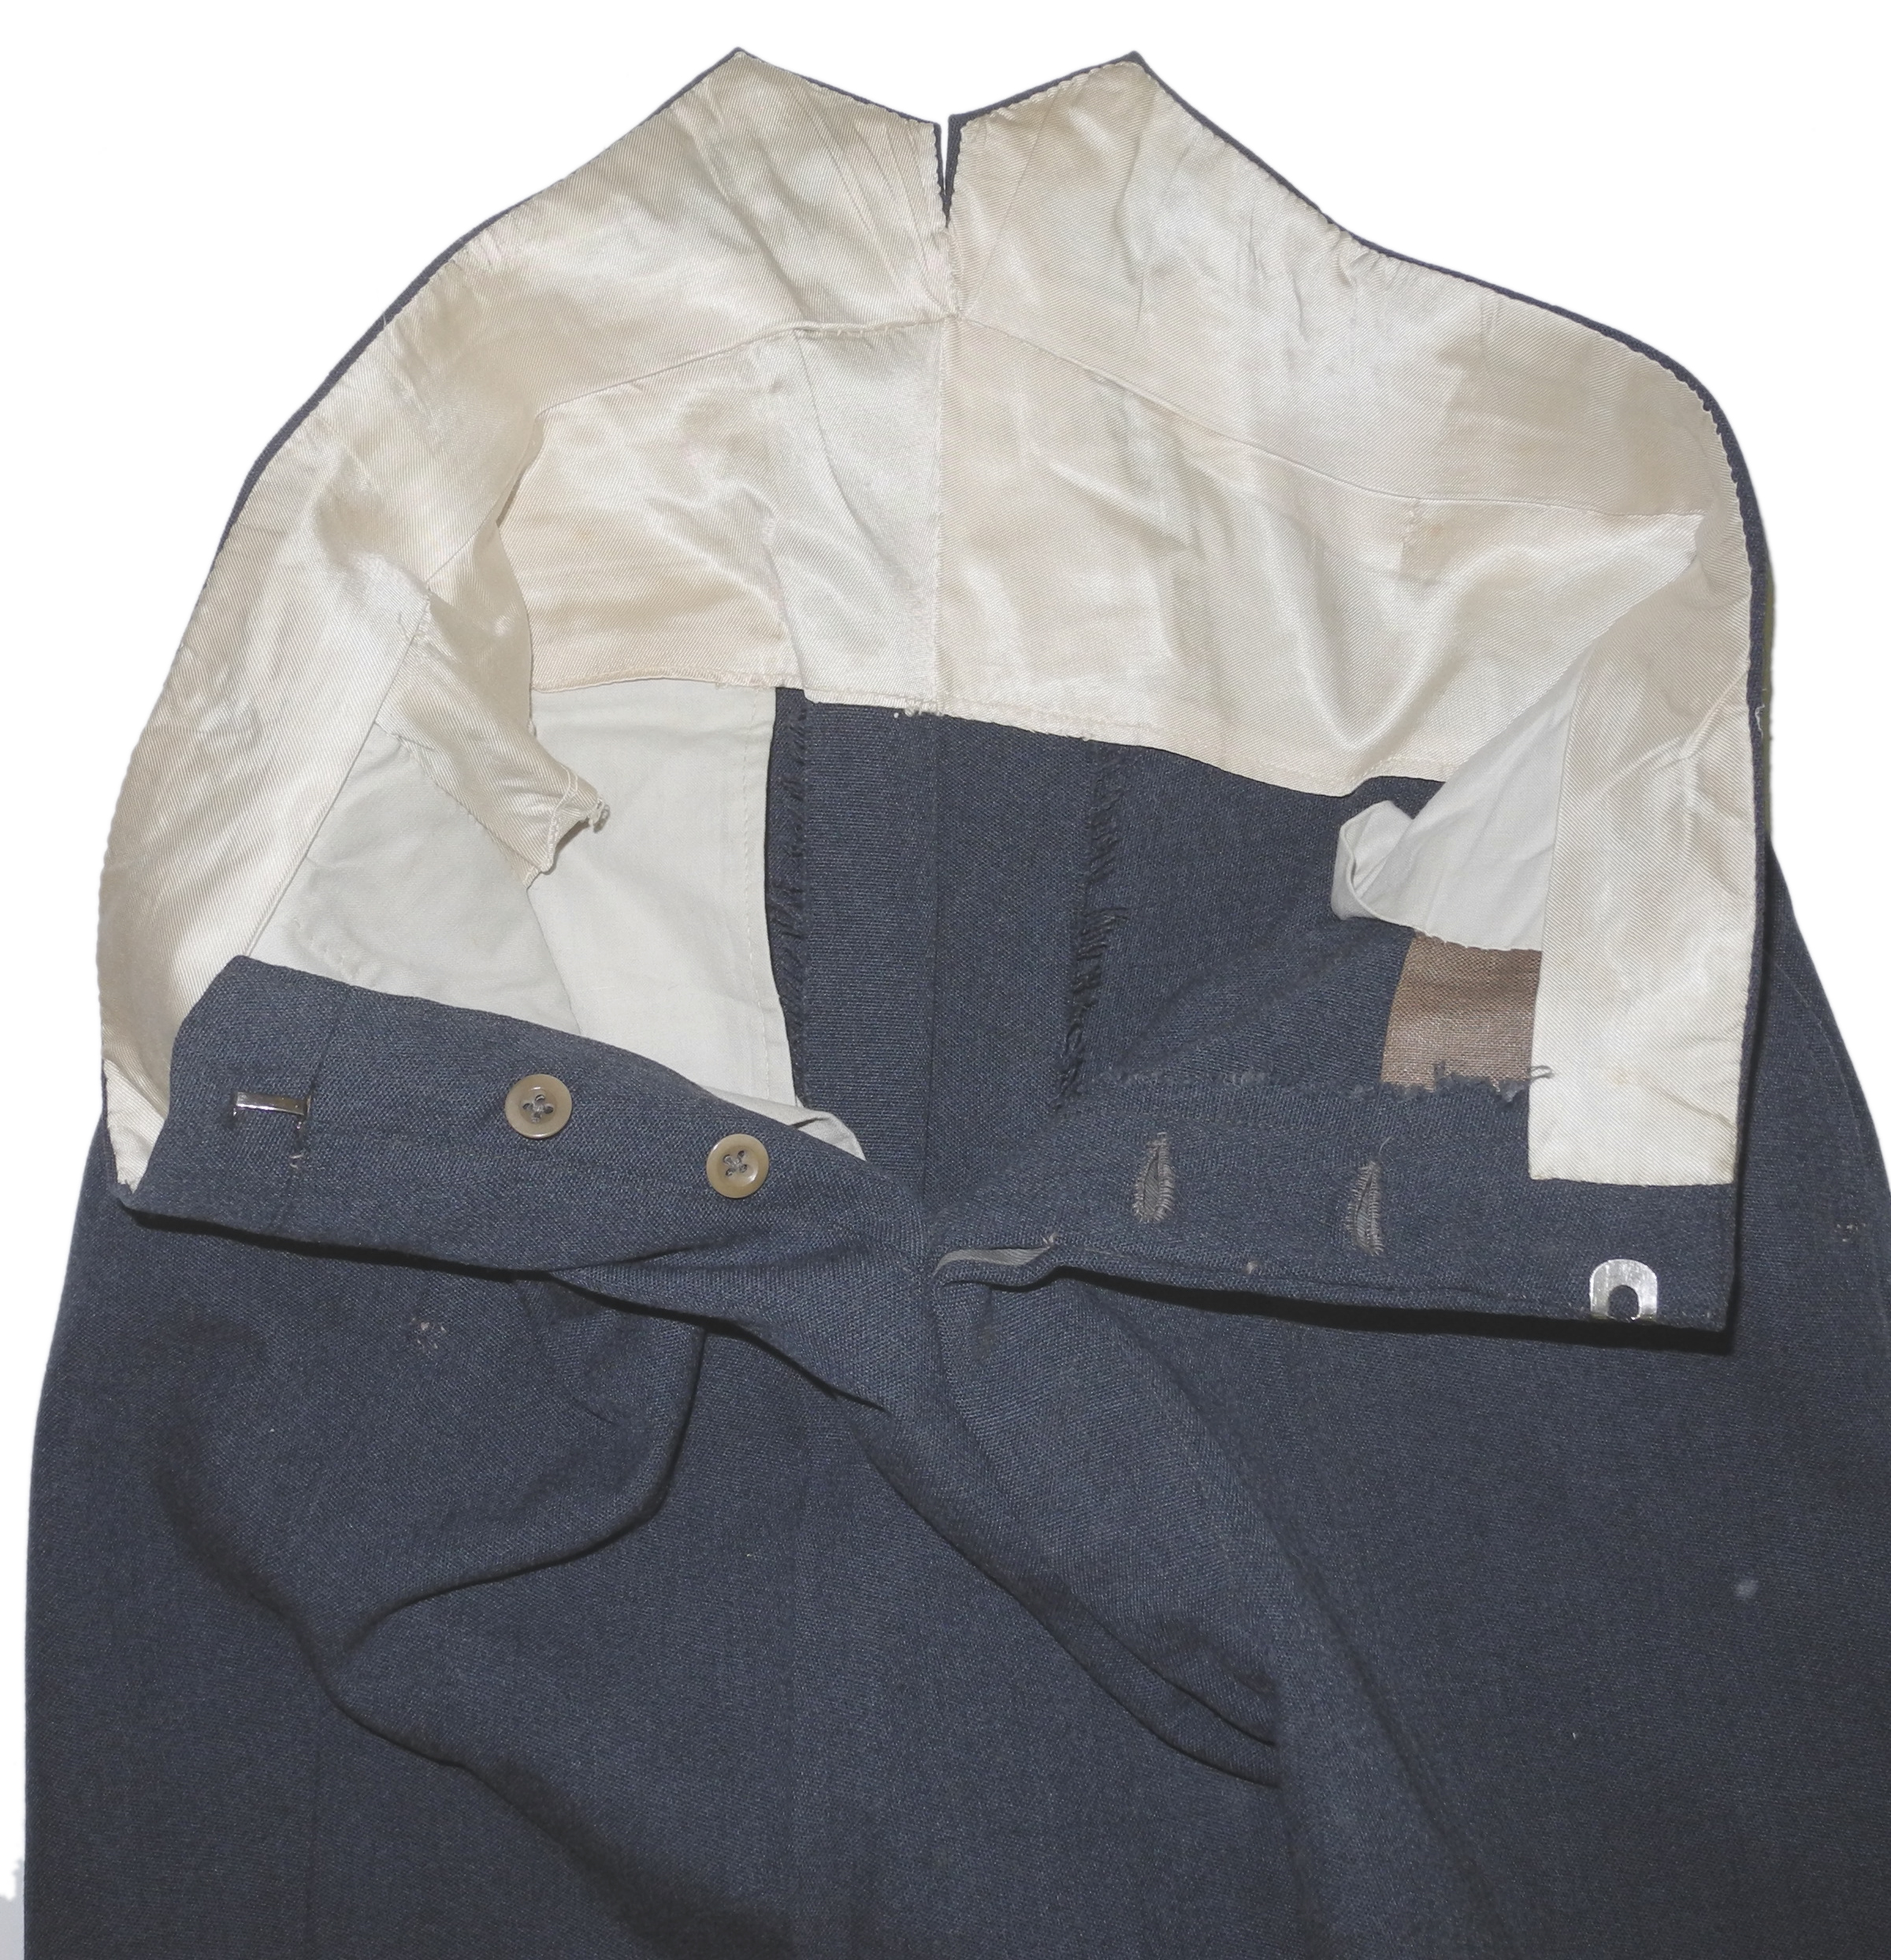 RAF officer's service dress trousers